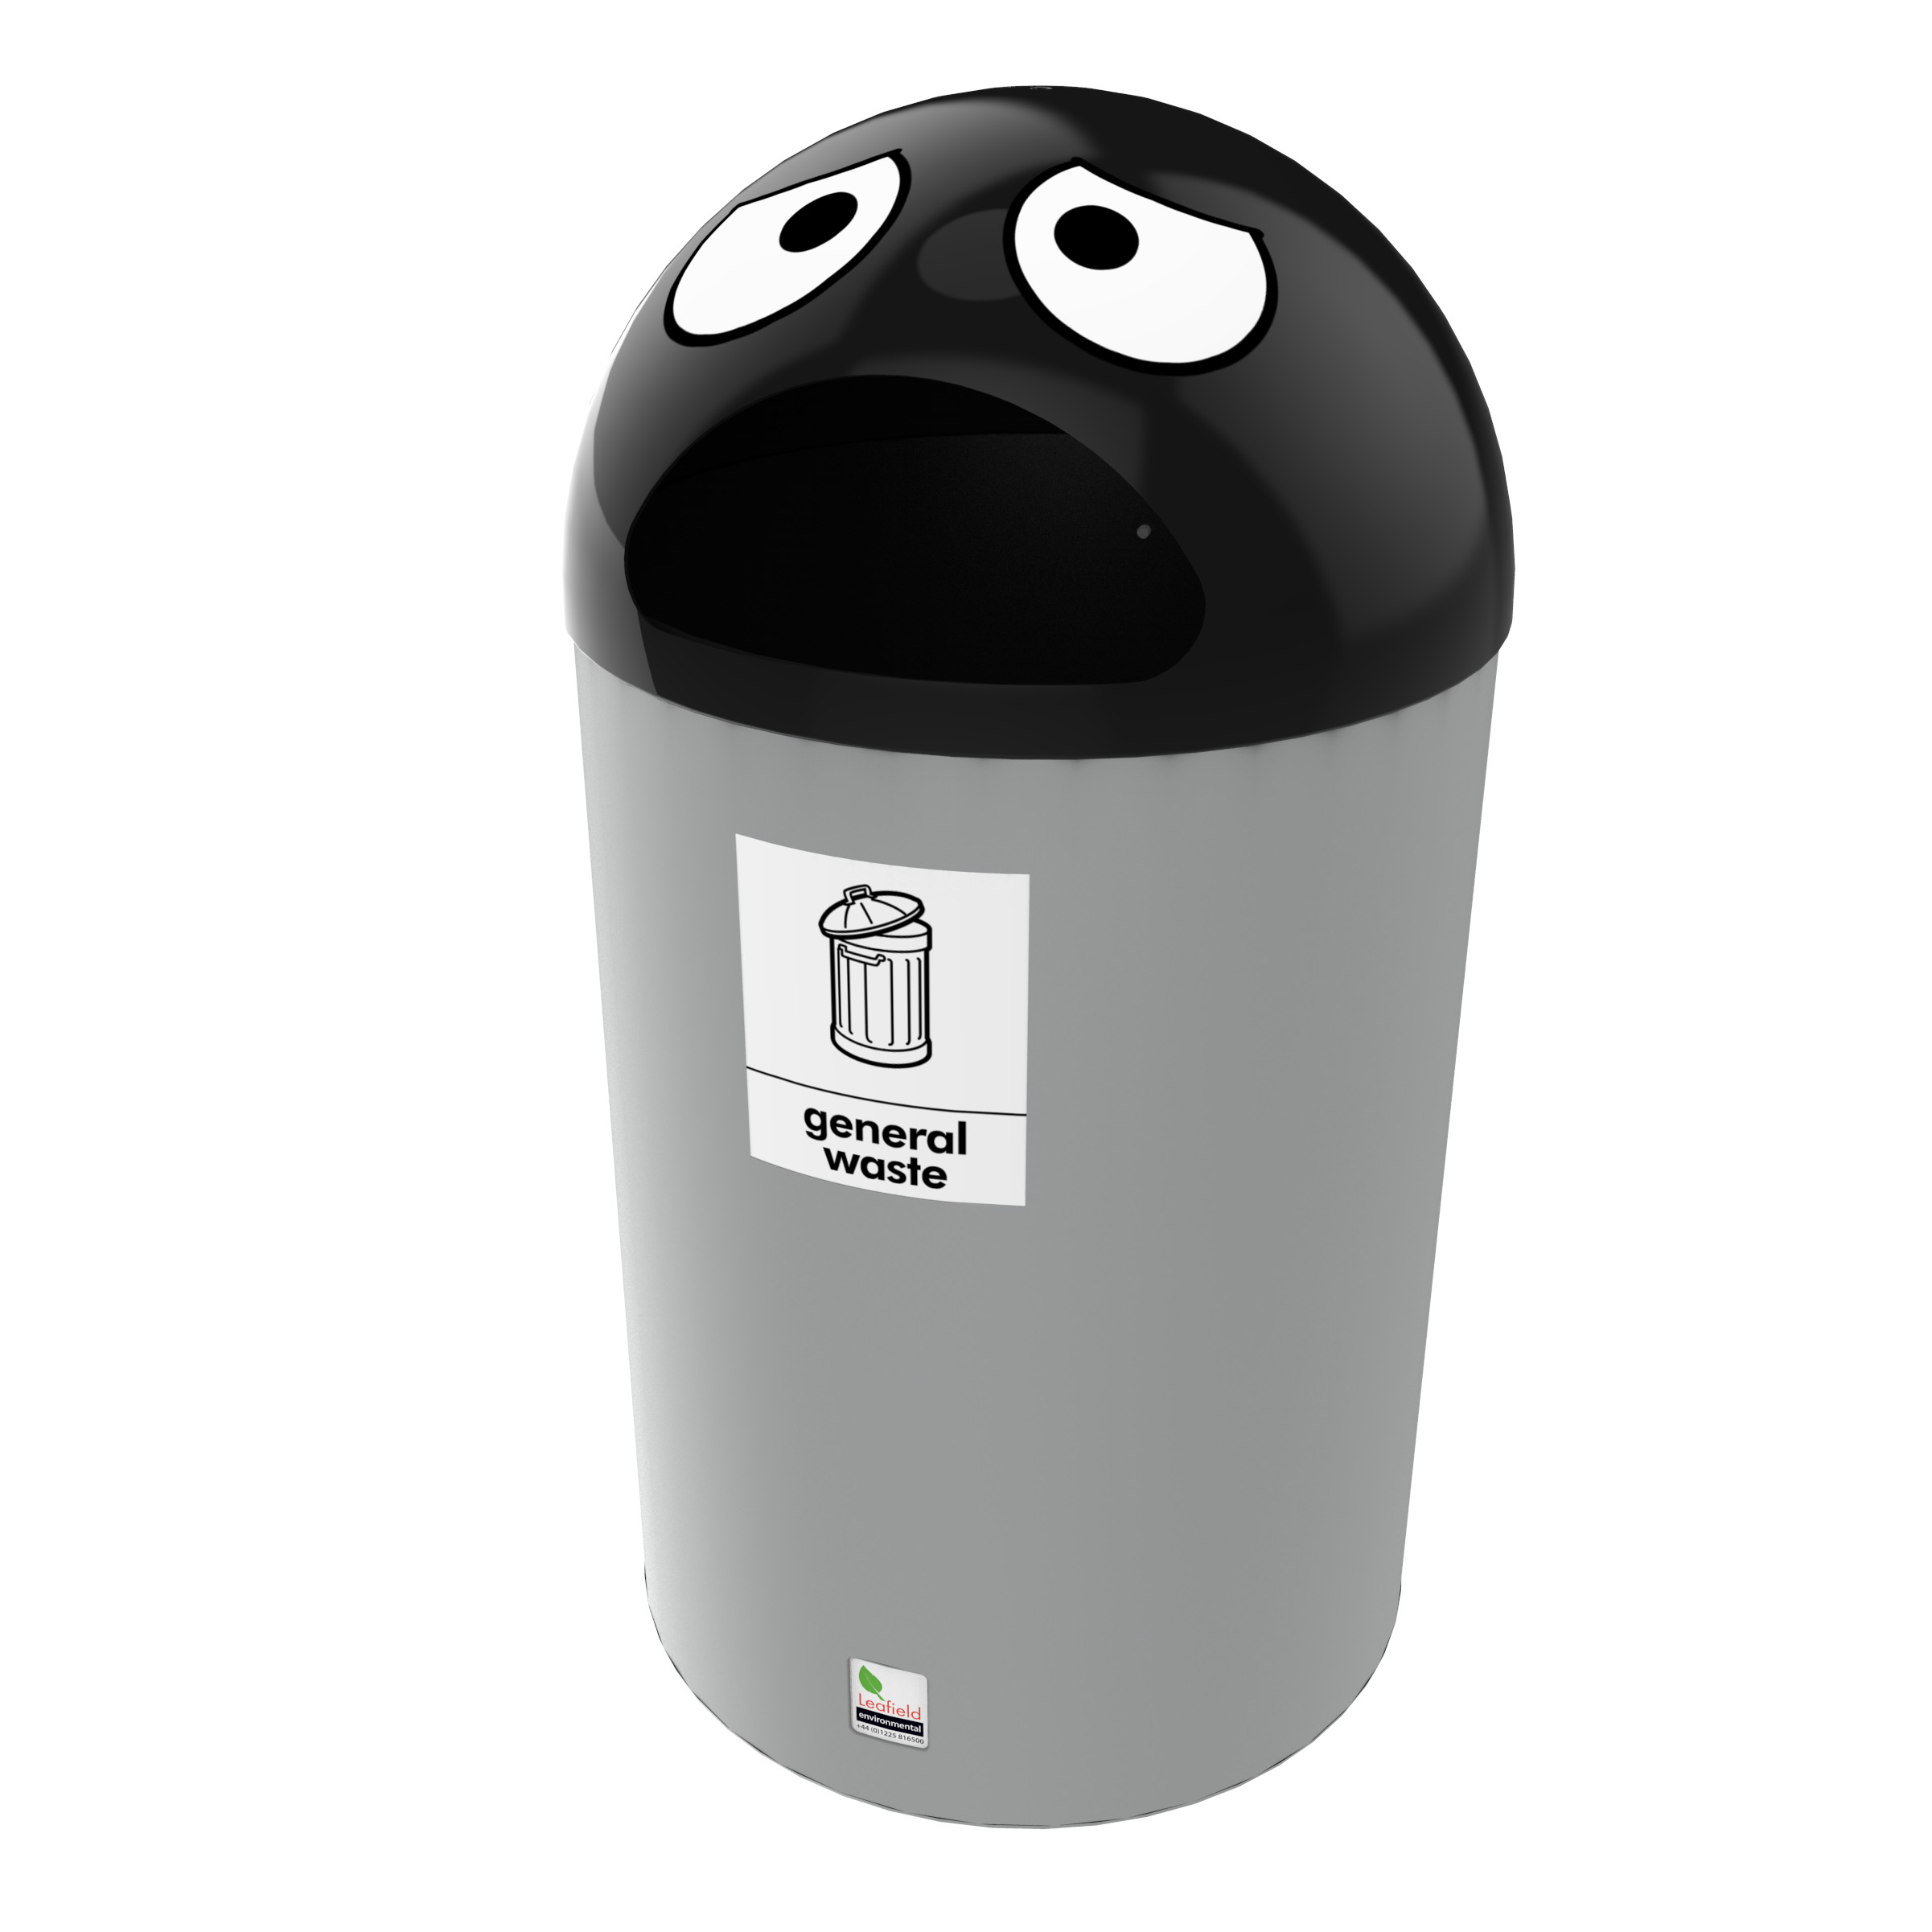 637181364253298196_81886_buddy75_general-waste-(1).jpg